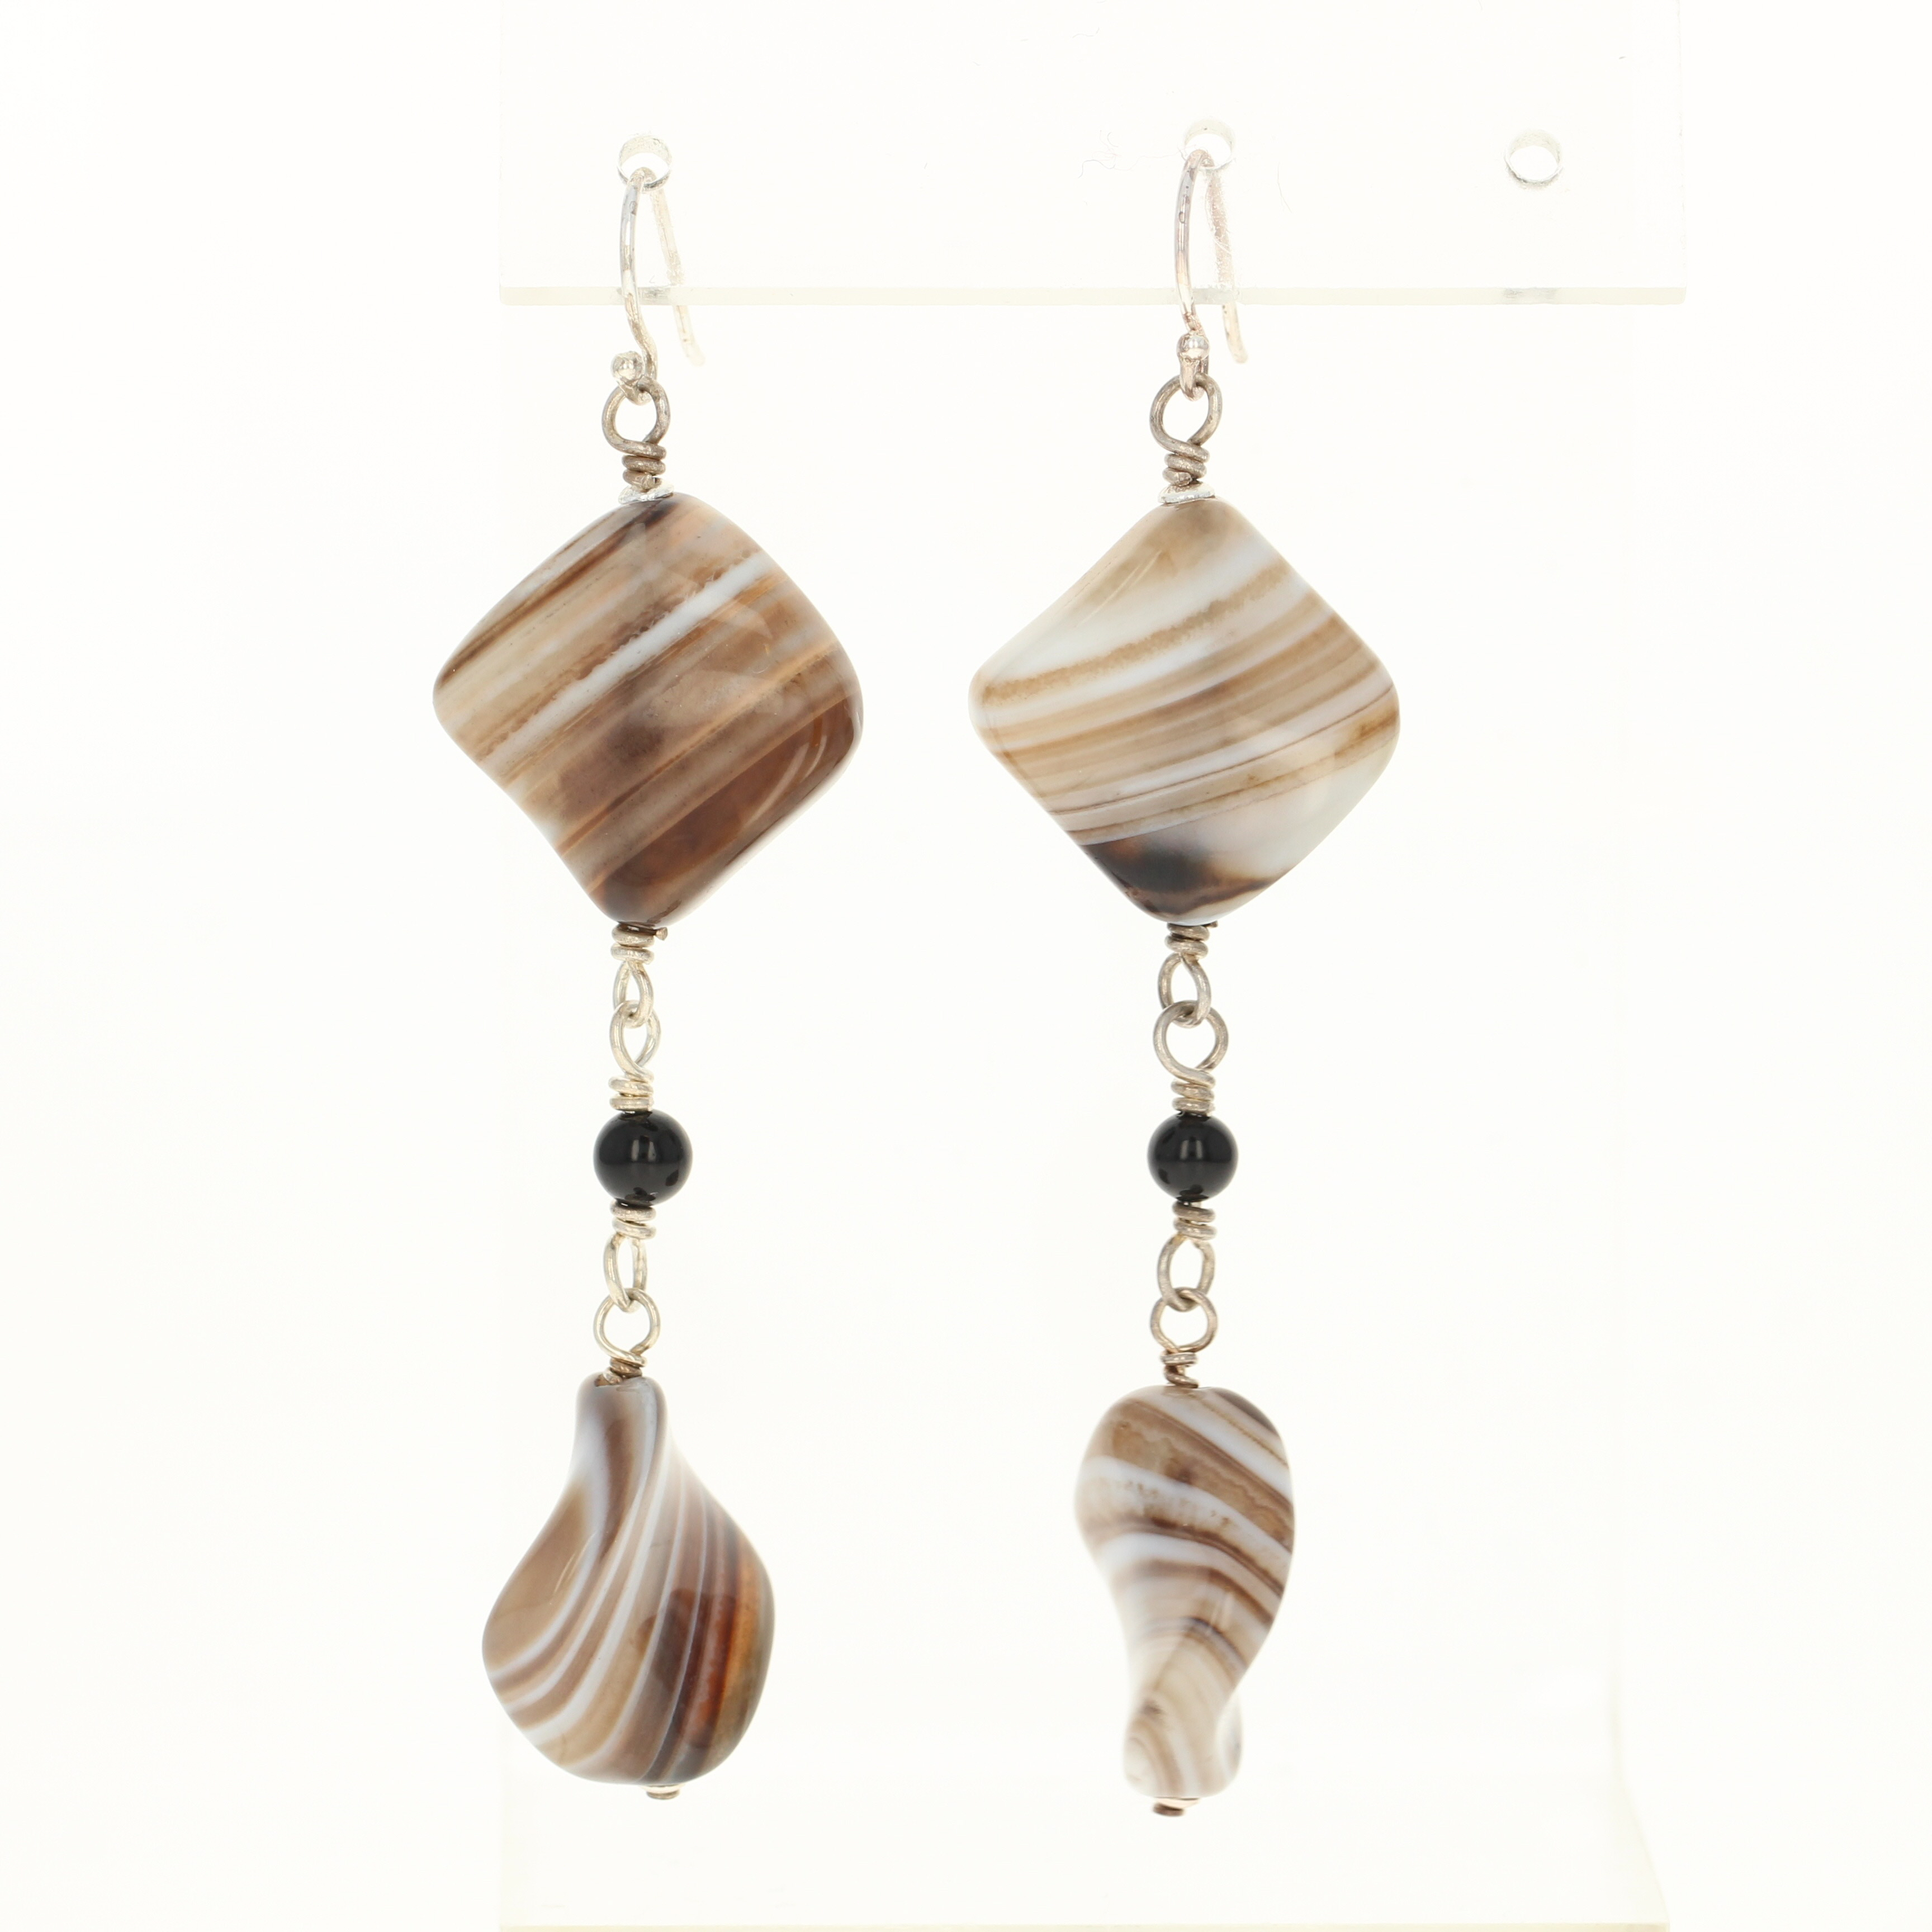 Details About New Banded Agate Dangle Earrings Sterling Silver Hook Posts Pierced Brown Stone